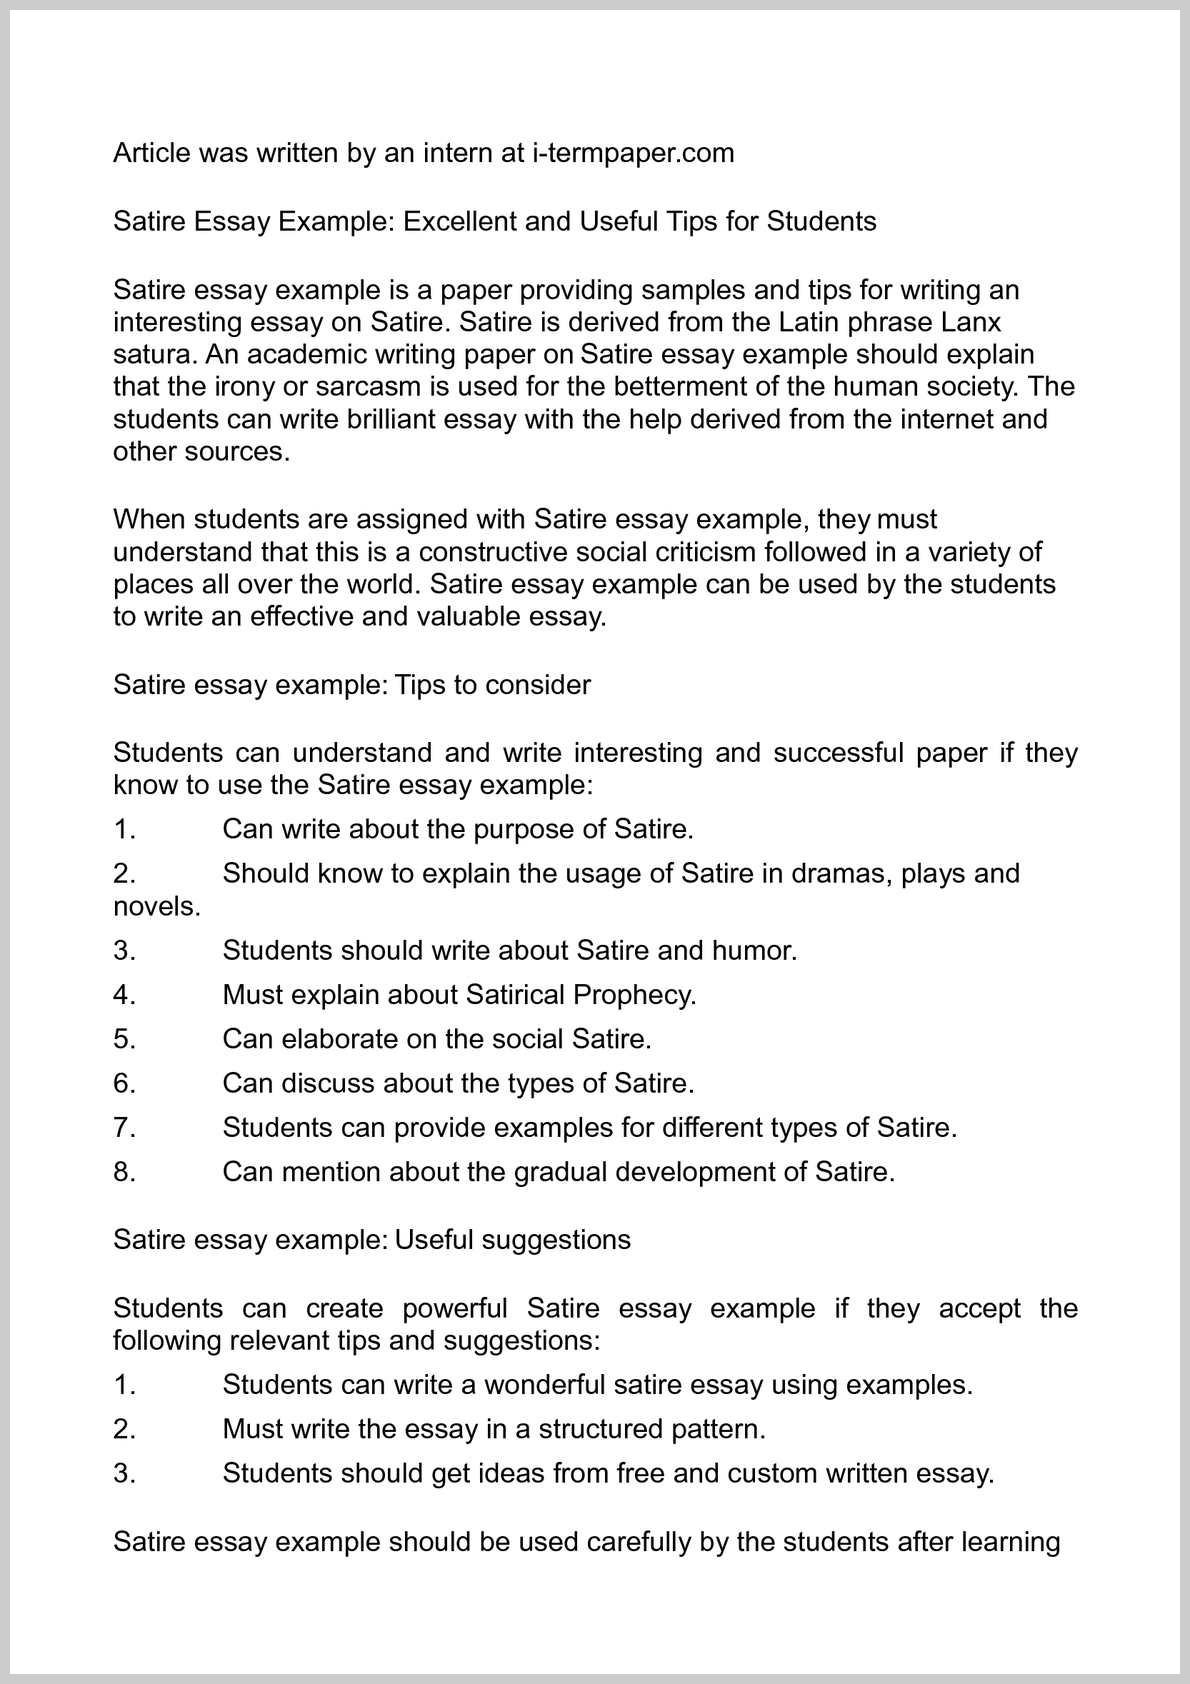 001 Good Satire Essays Of Topics Satirical Exceptional Essay Examples On Social Media Issues Full